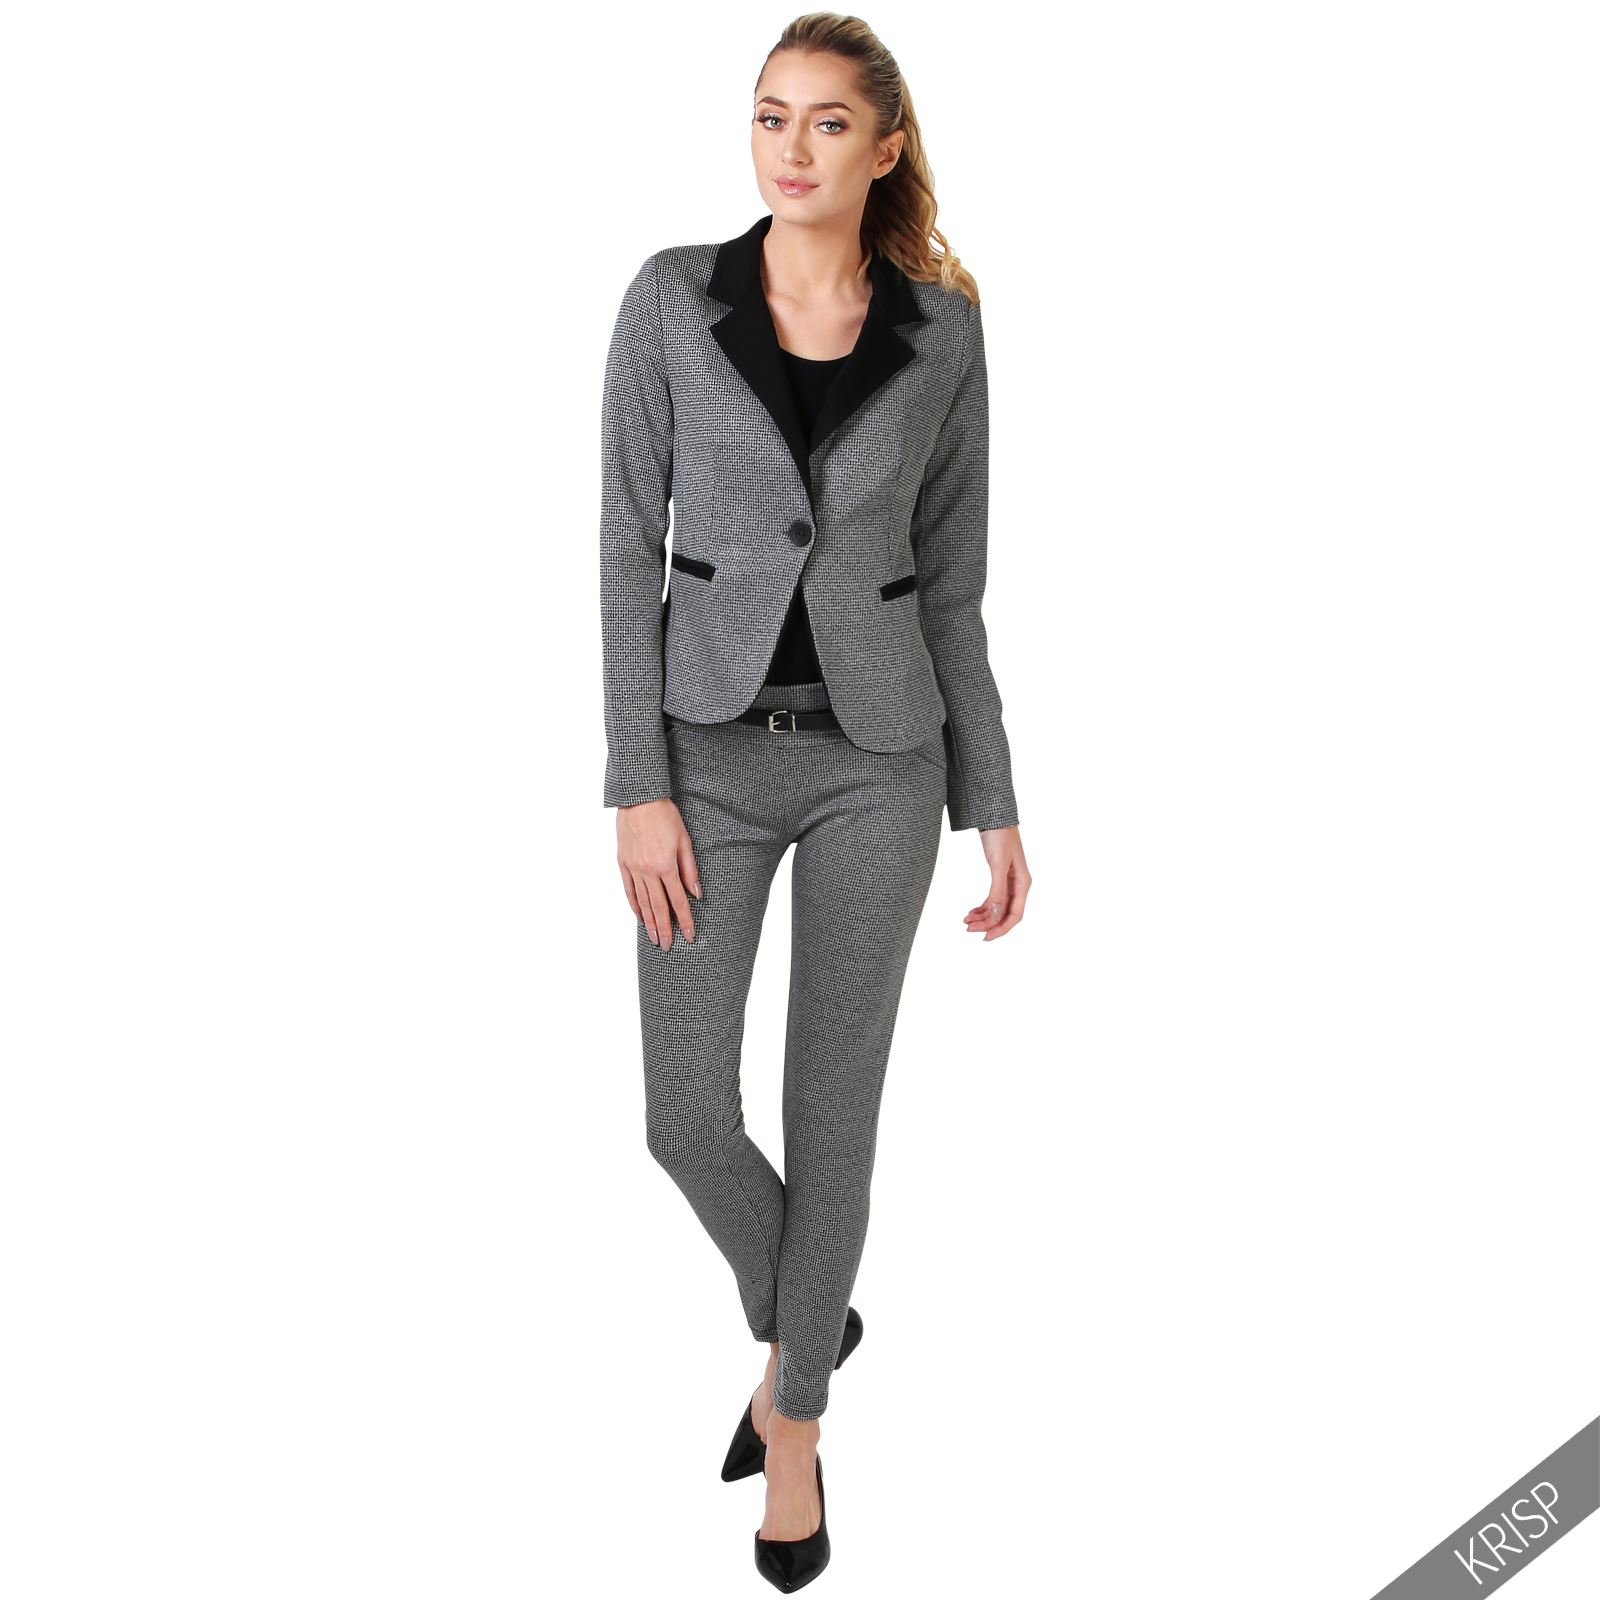 damen business hosenanzug eleganter blazer graue slim fit hose anzug set ebay. Black Bedroom Furniture Sets. Home Design Ideas